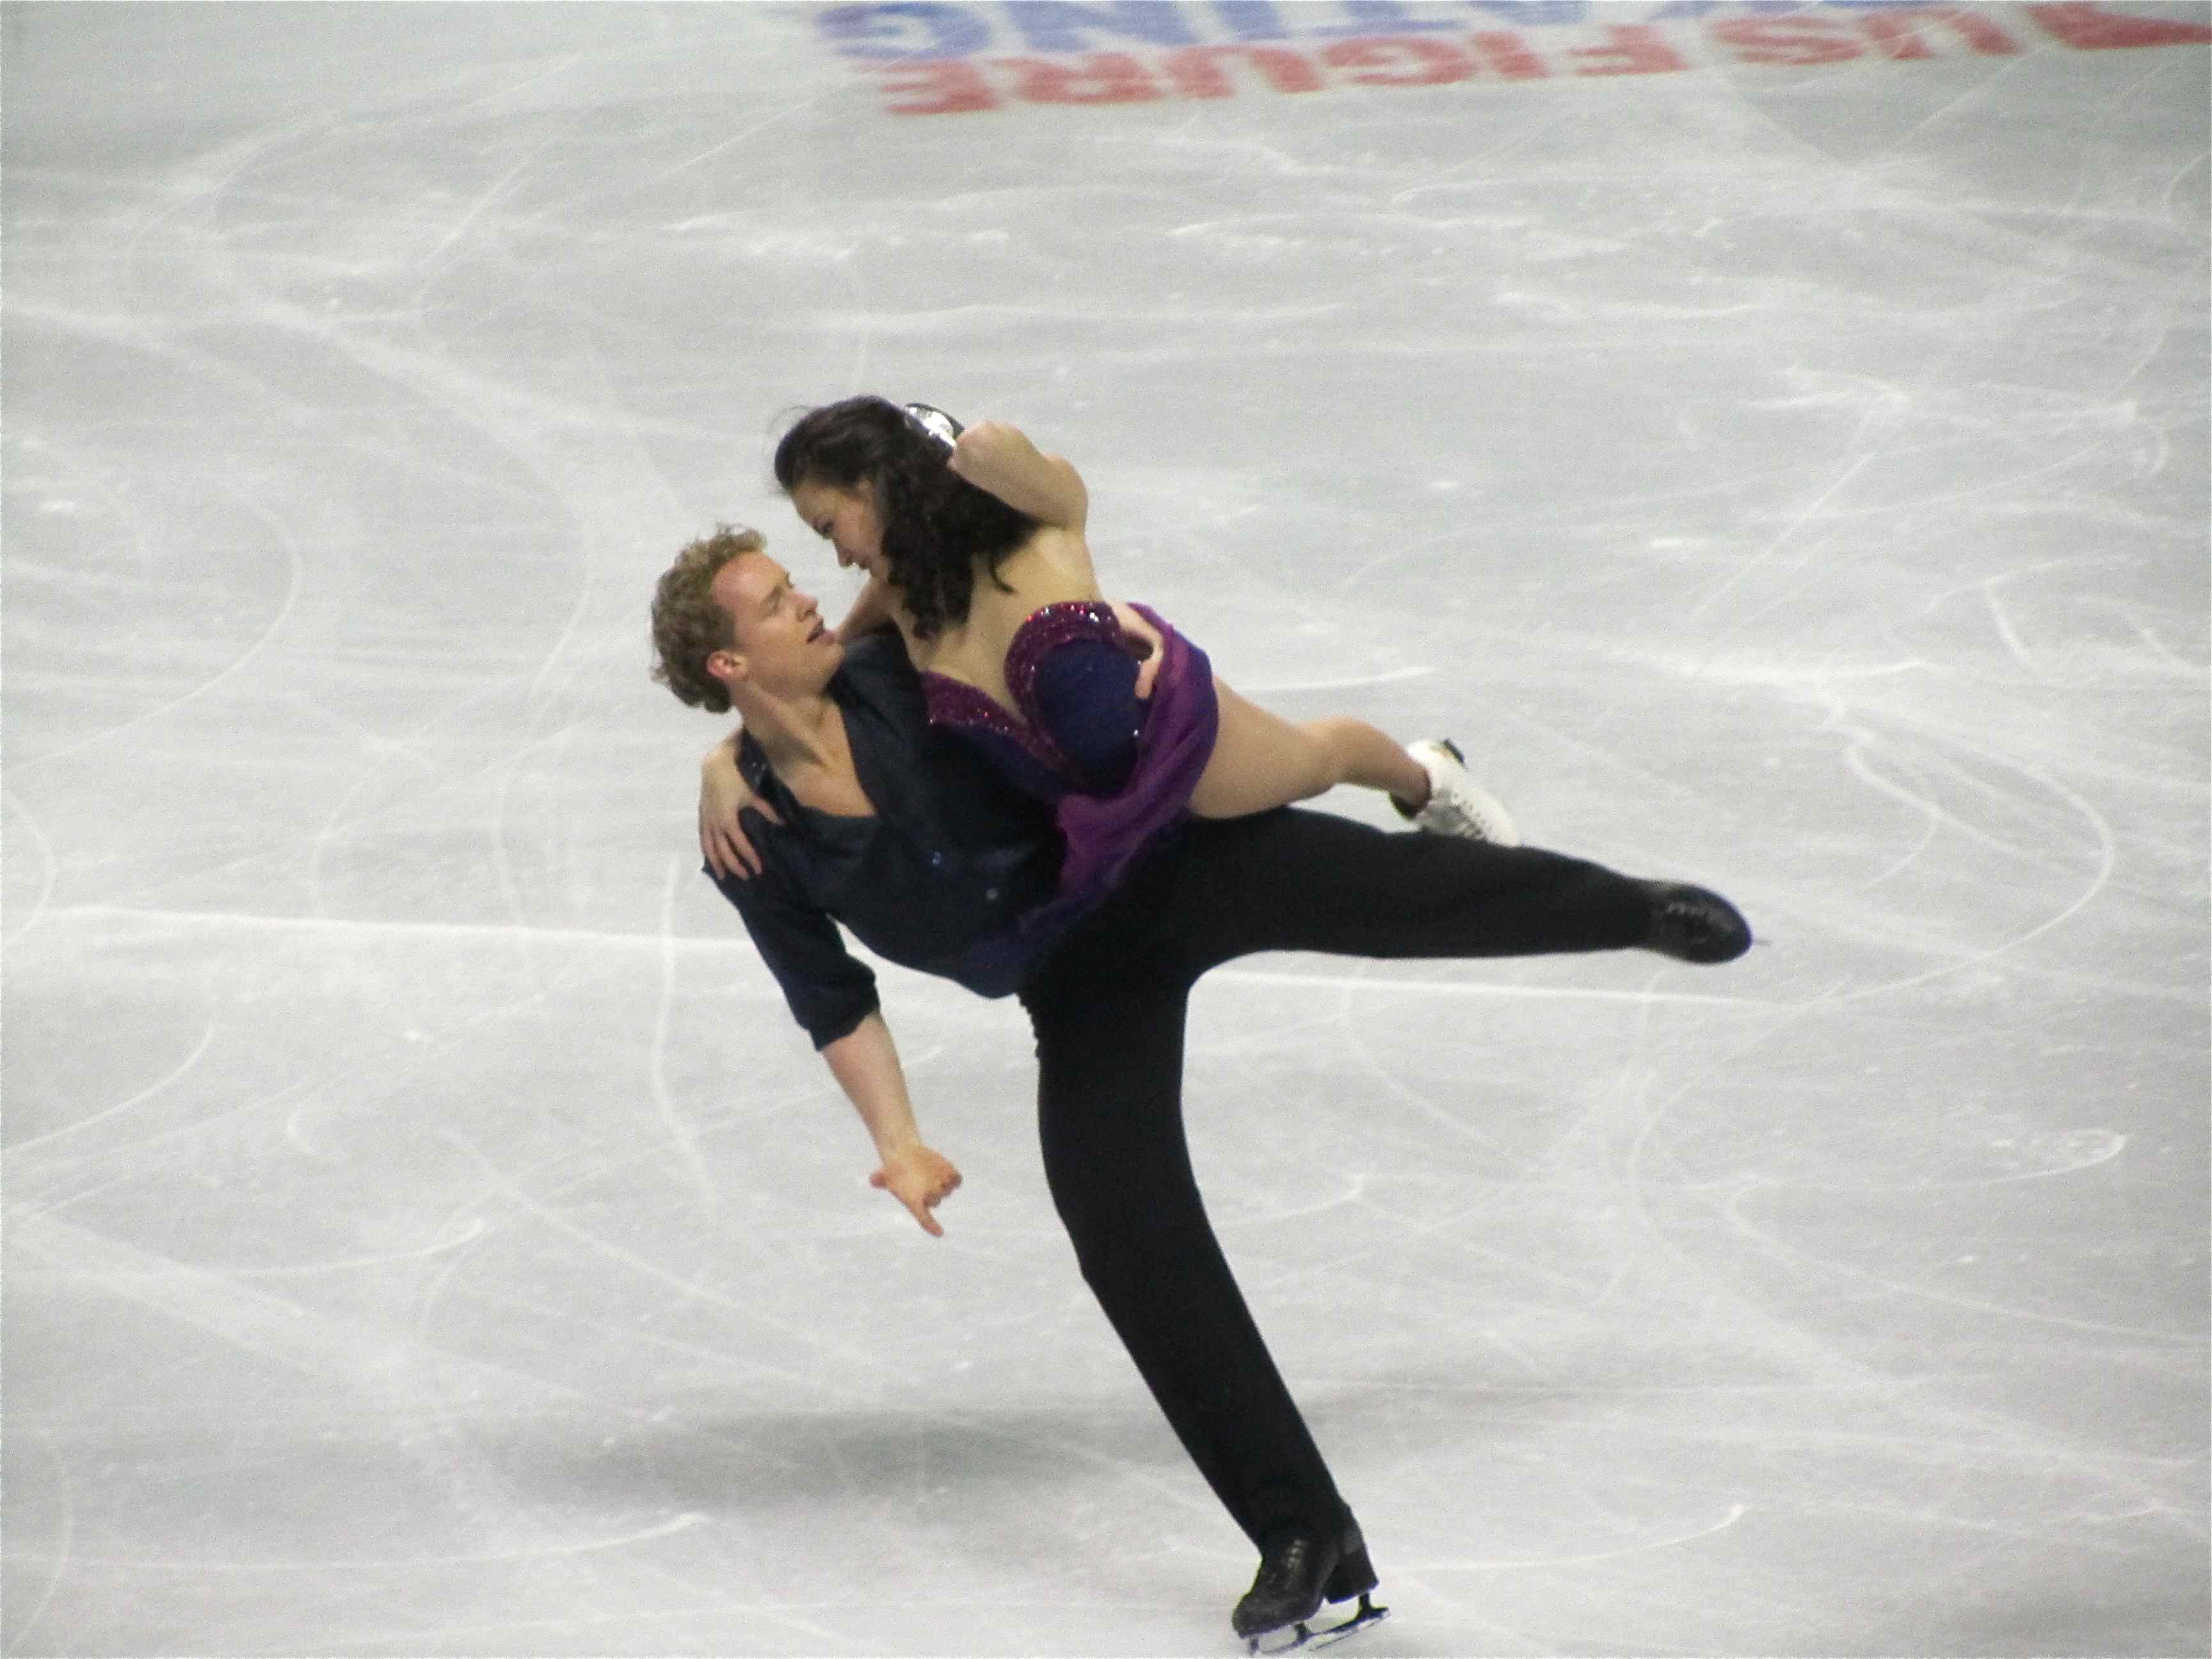 Discussion on this topic: Rachael Beck, sasha-cohen-reigning-us-figure-skating-champion/